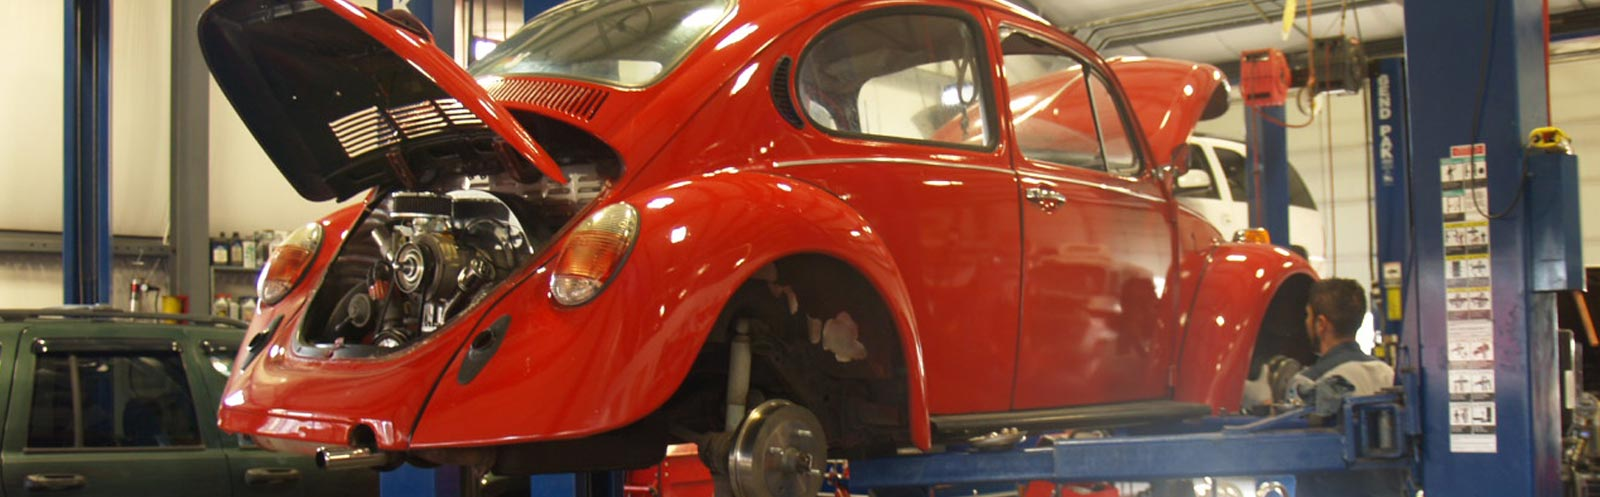 Classic Car being repaired at Specialty Automotive Service & Repair in Bend, OR